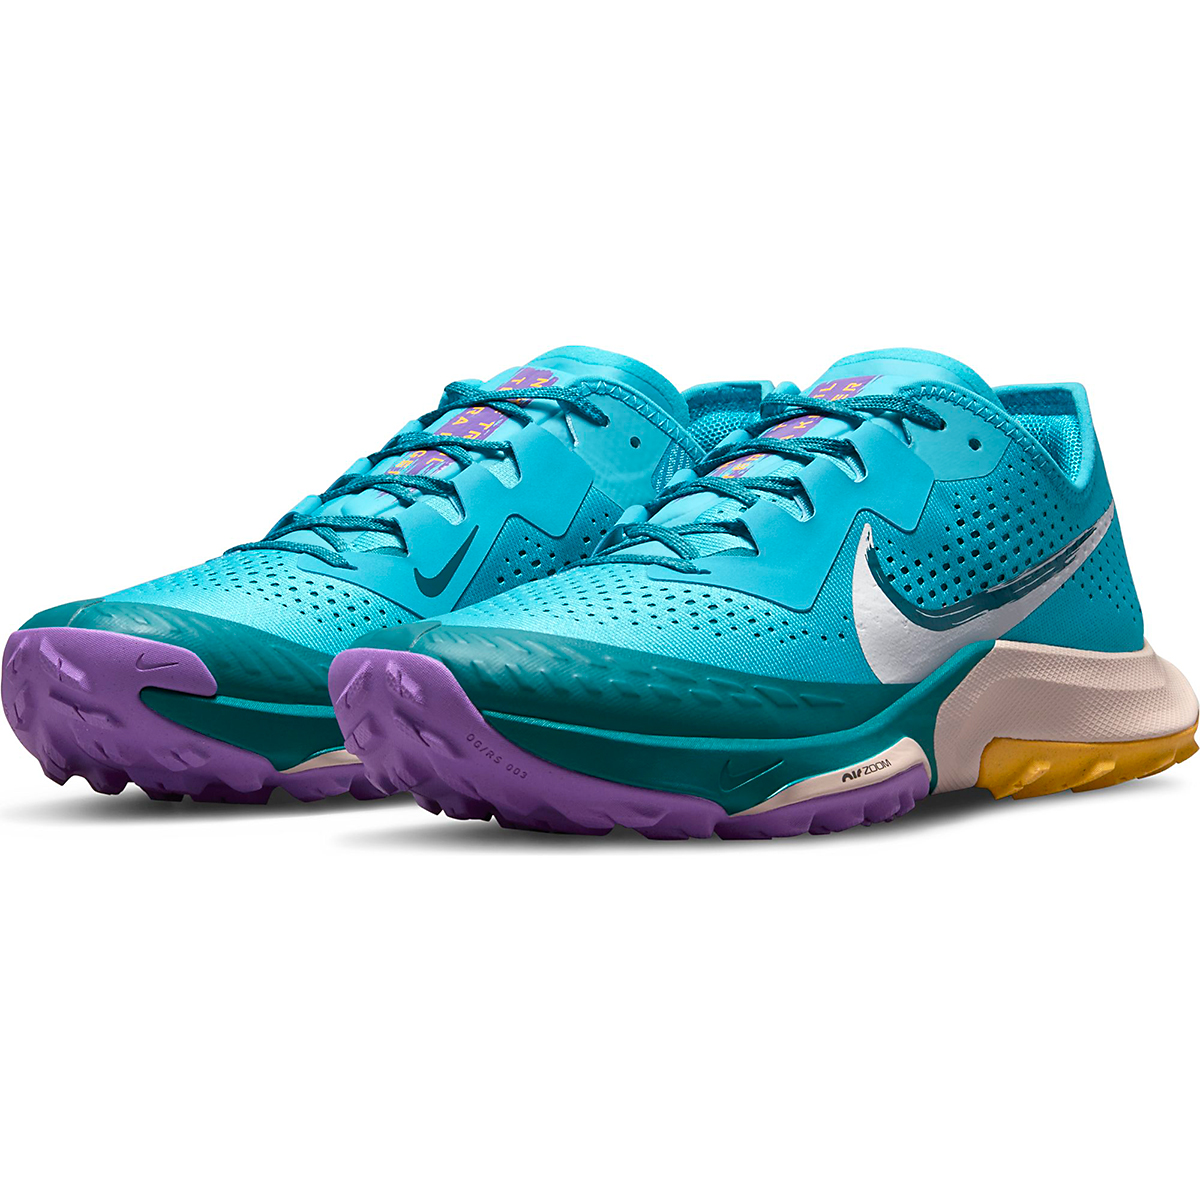 Men's Nike Air Zoom Terra Kiger 7 Trail Running Shoe - Color: Turquoise Blue/White/Mystic Teal - Size: 6 - Width: Regular, Turquoise Blue/White/Mystic Teal, large, image 5